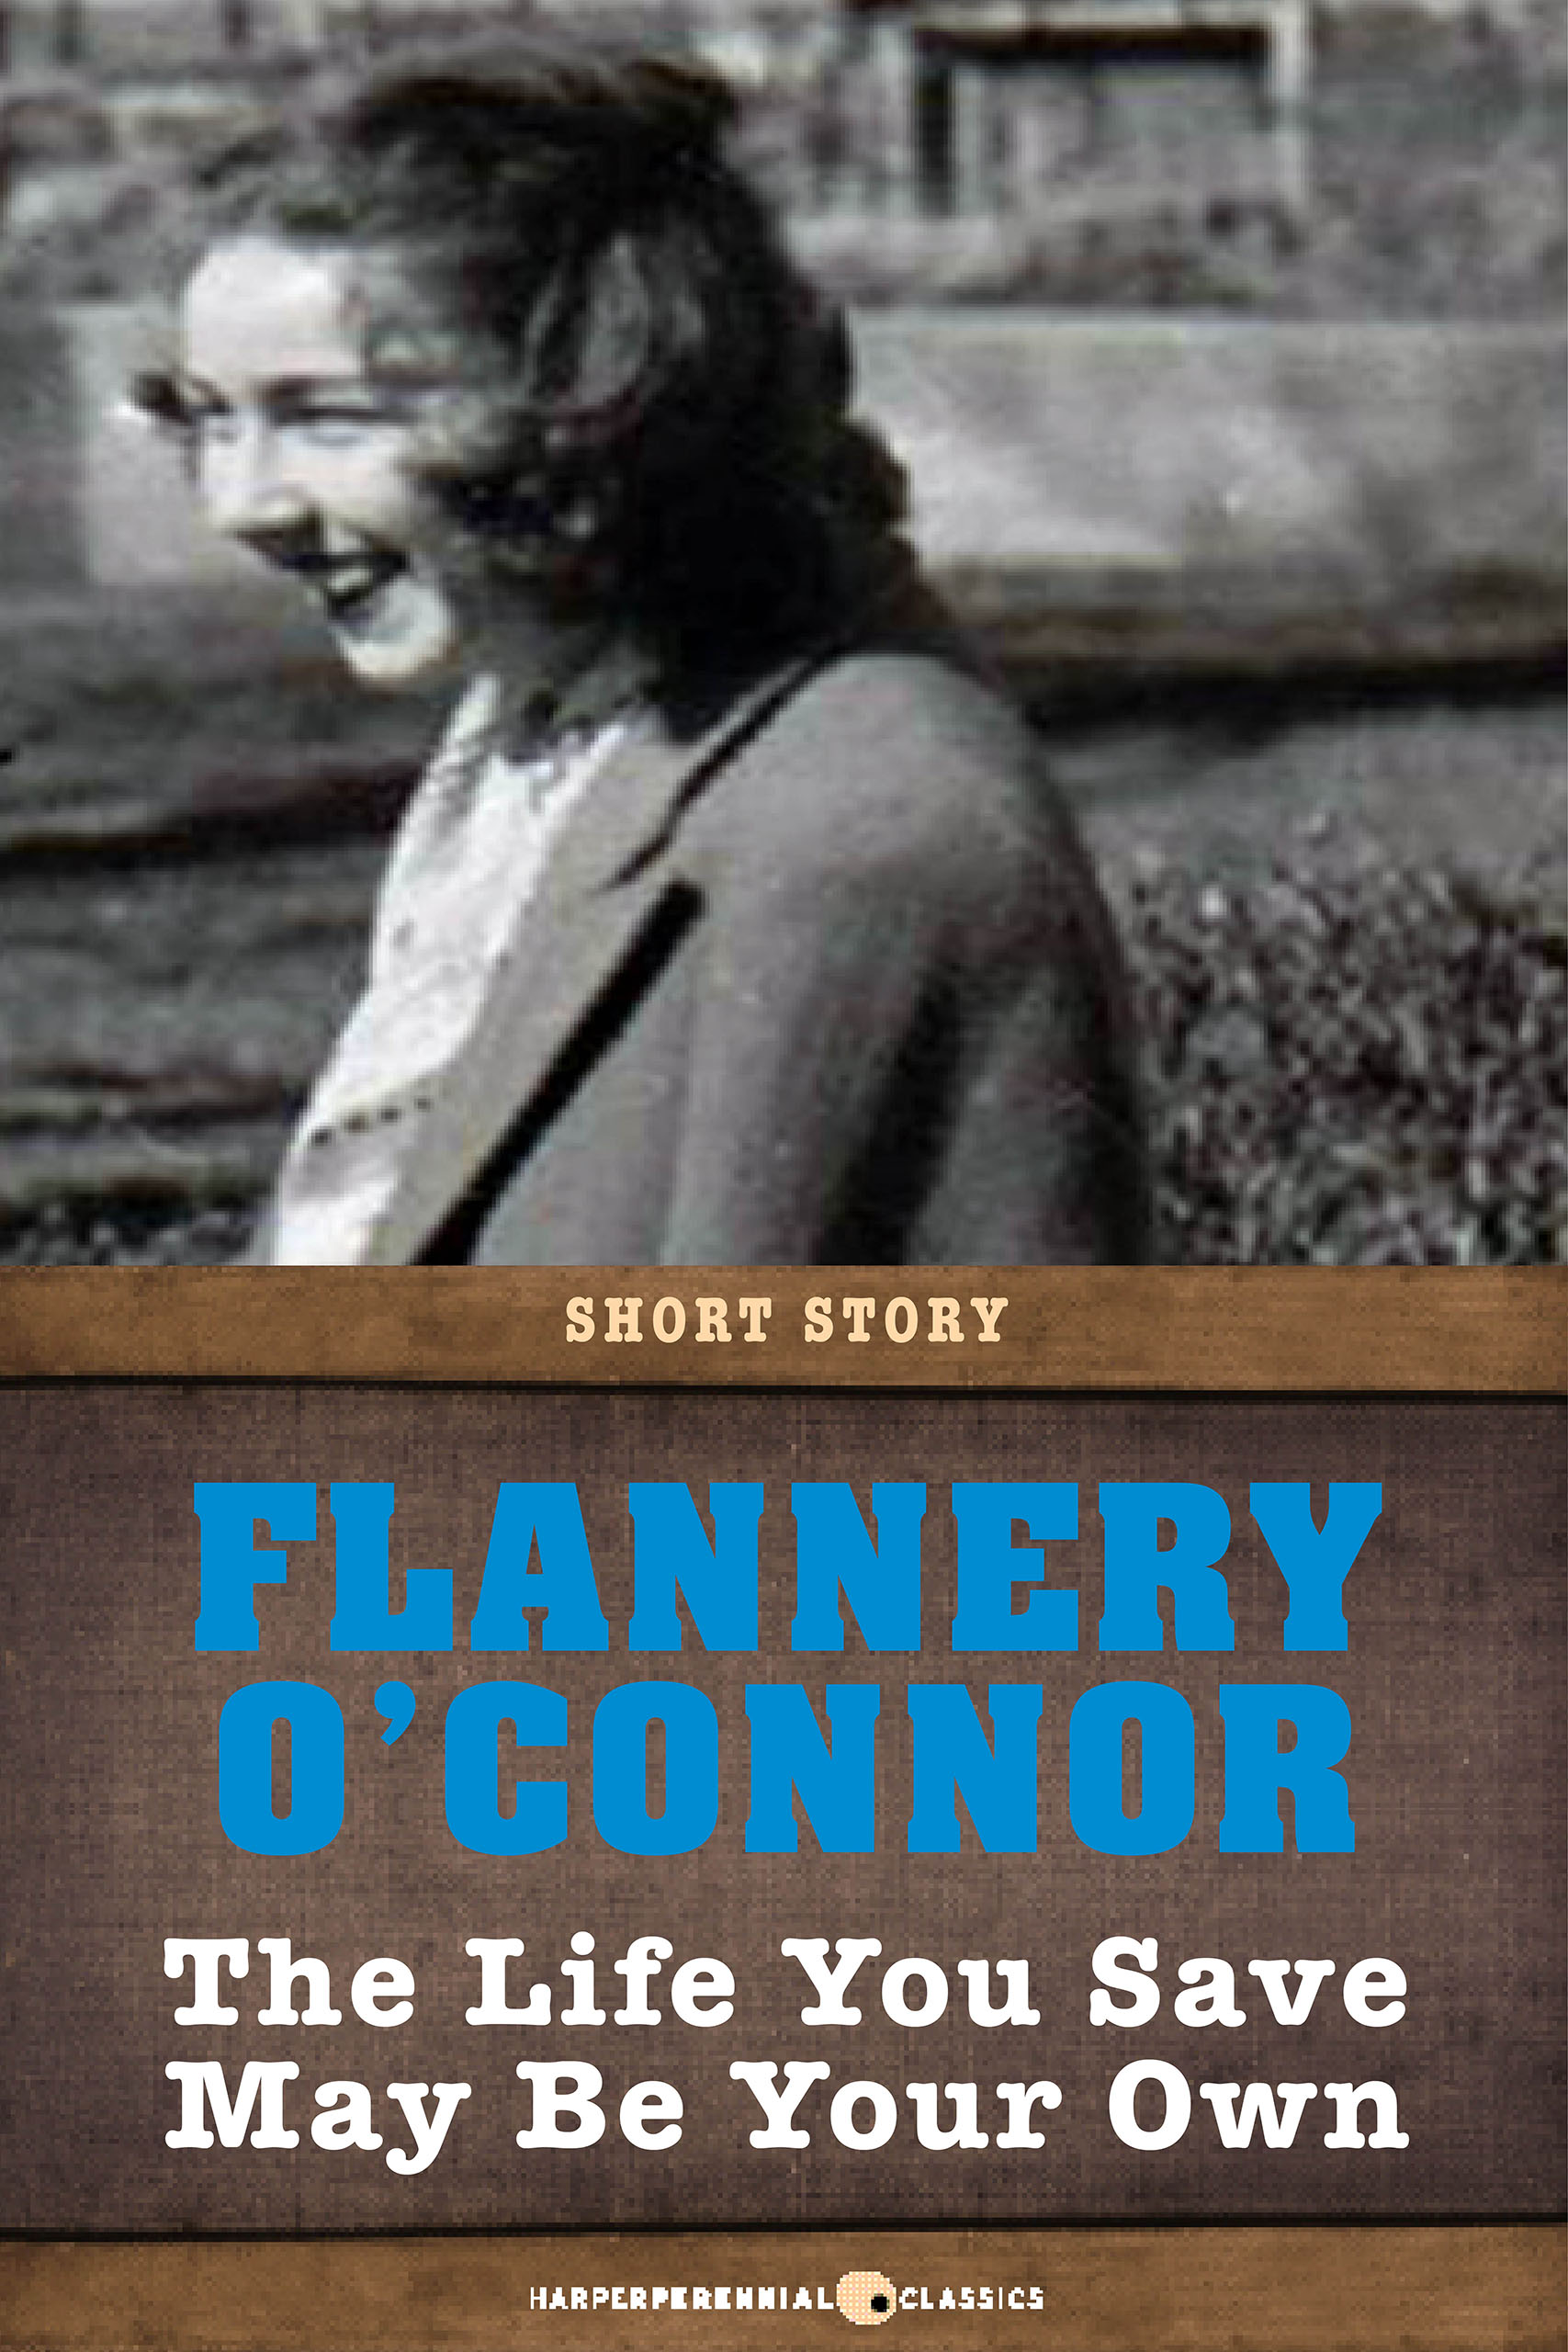 an introduction to the life and literature by flannery oconnor